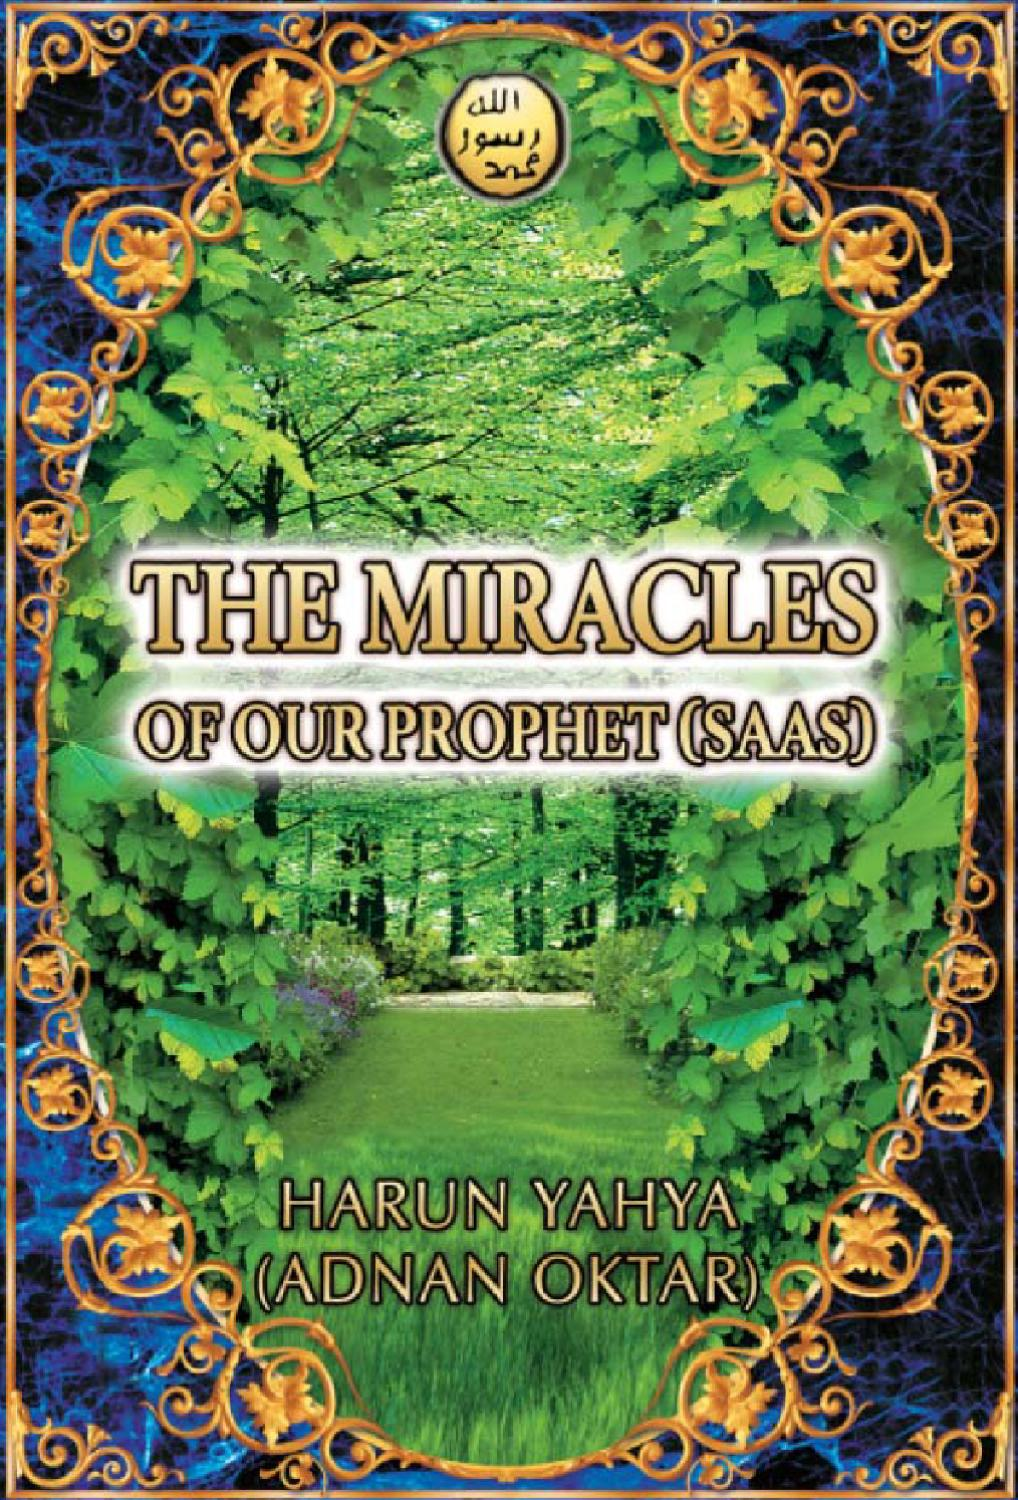 The Miracles of our Prophet Muhammad saw by Shahid Mahmud